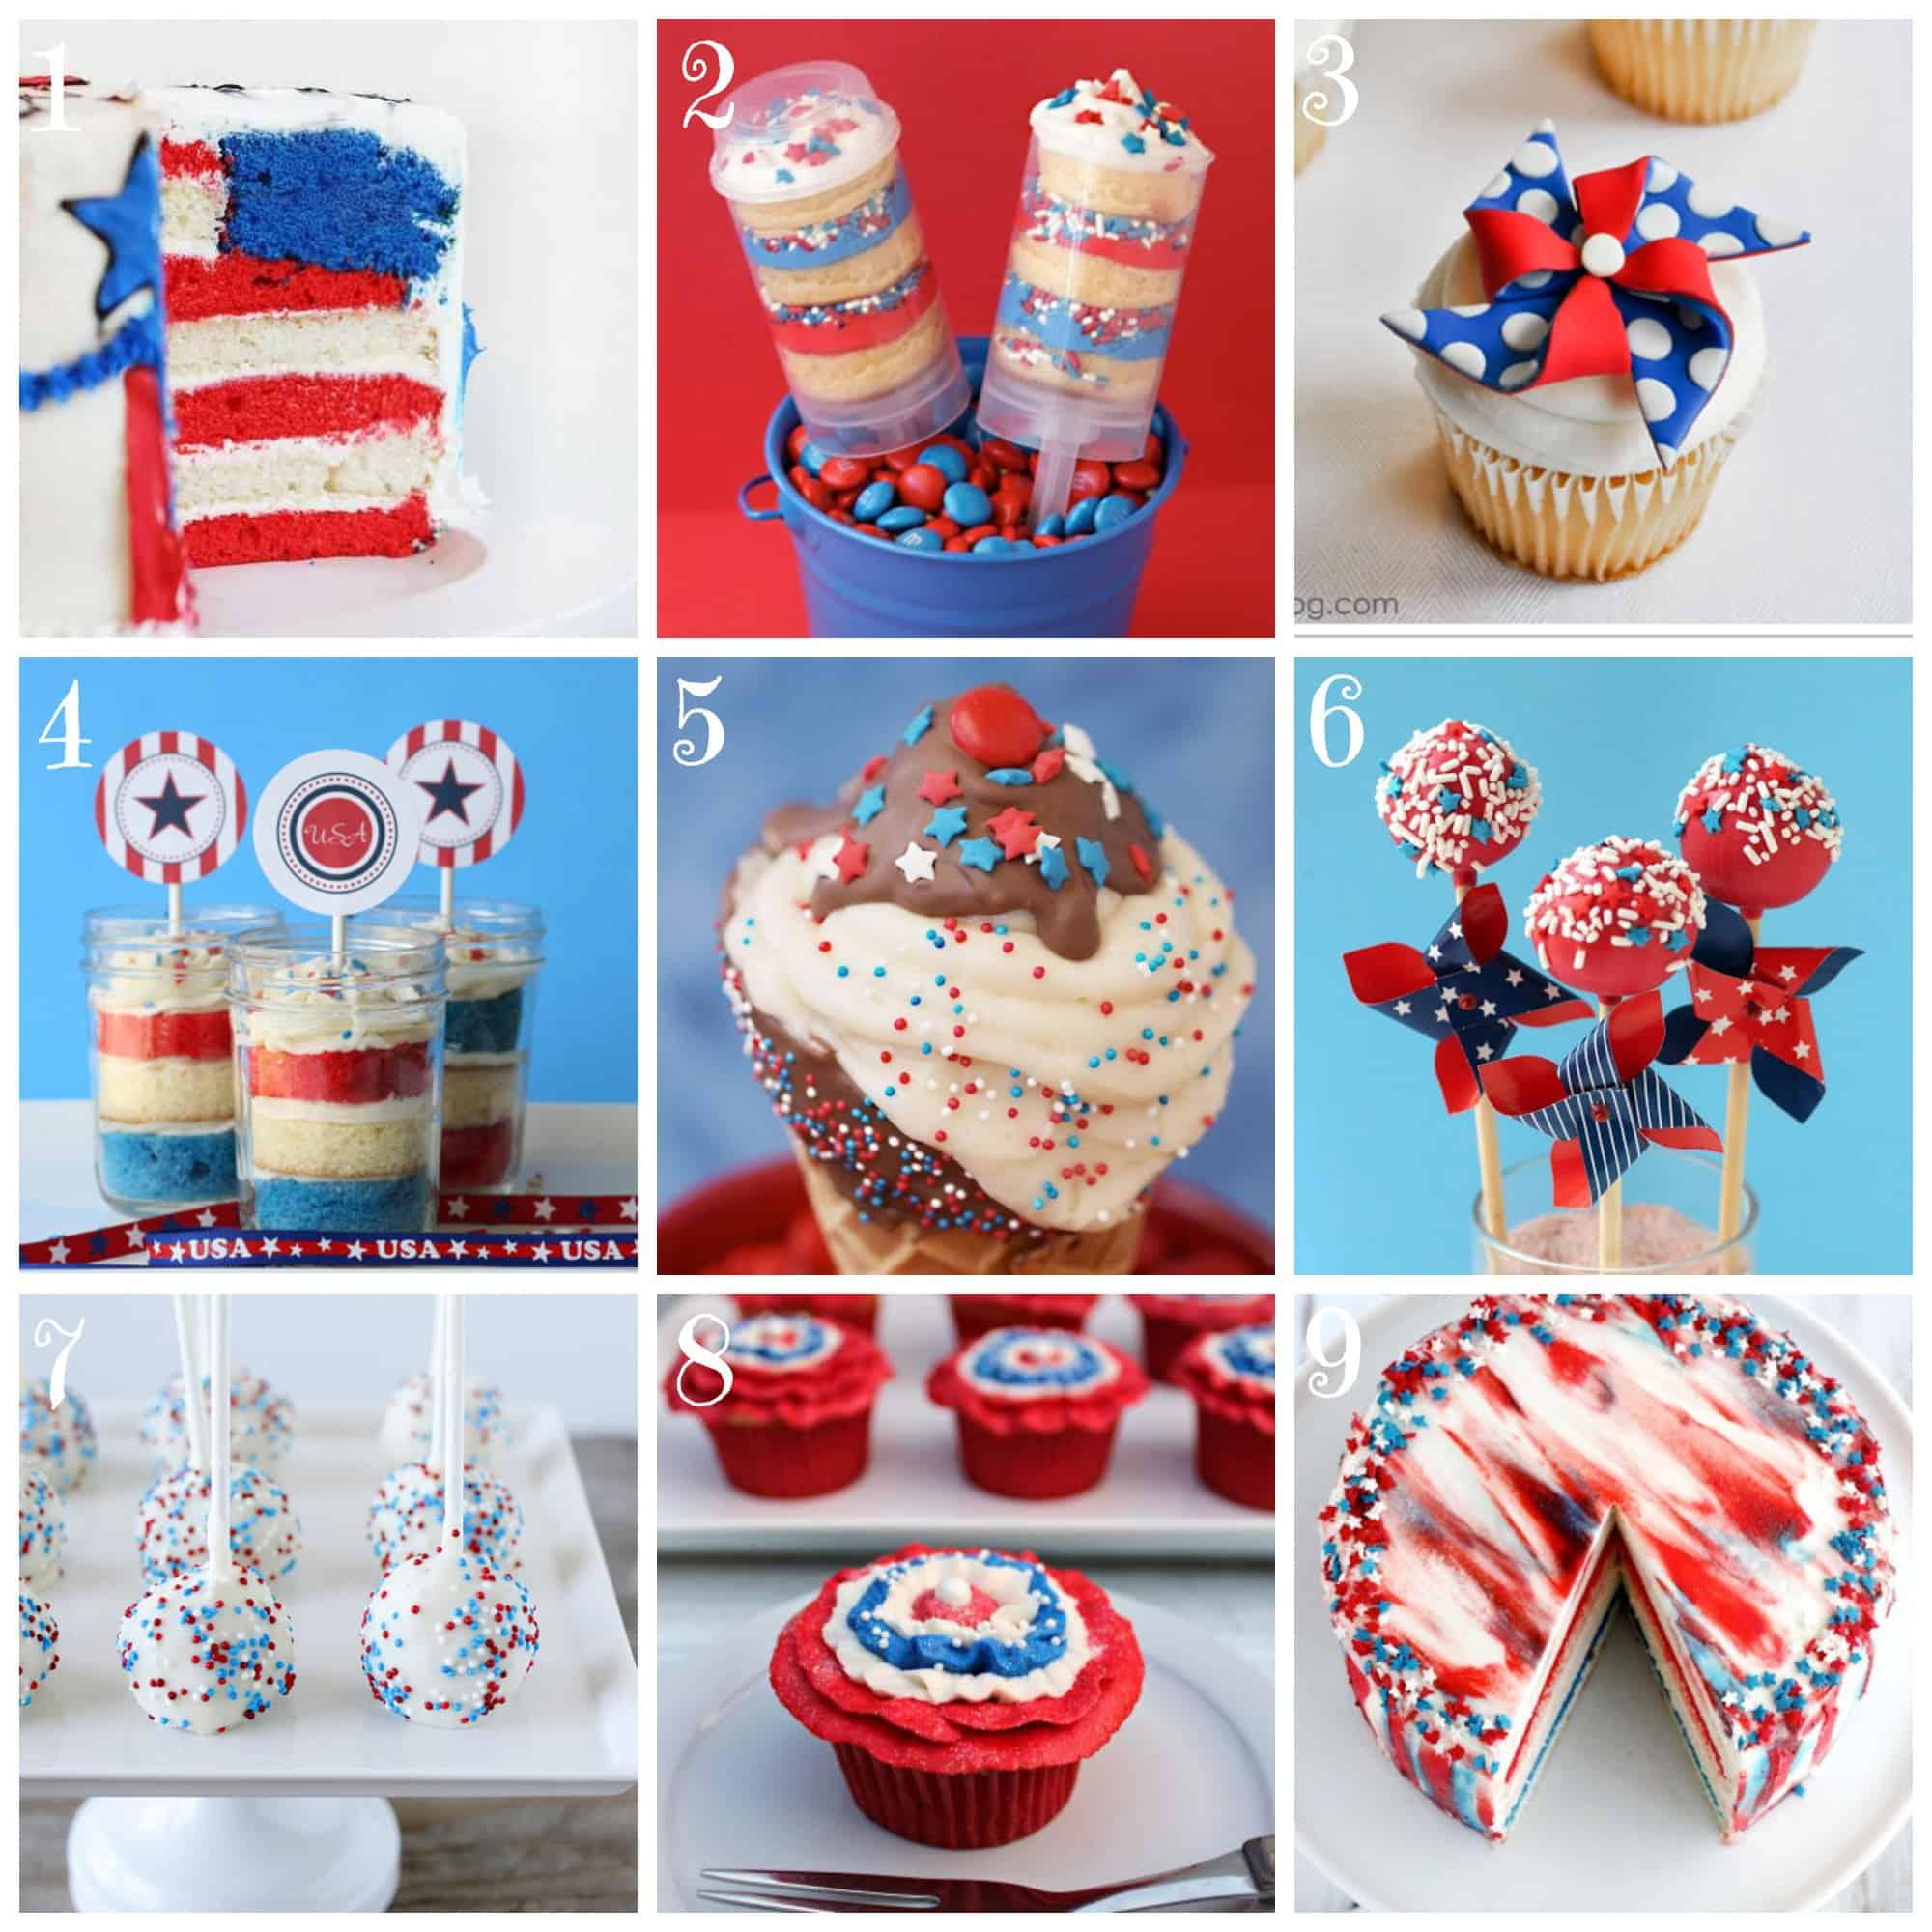 May The Fourth Be With You Treats: Top 9 4th Of July Cake And Cupcake Recipe Ideas